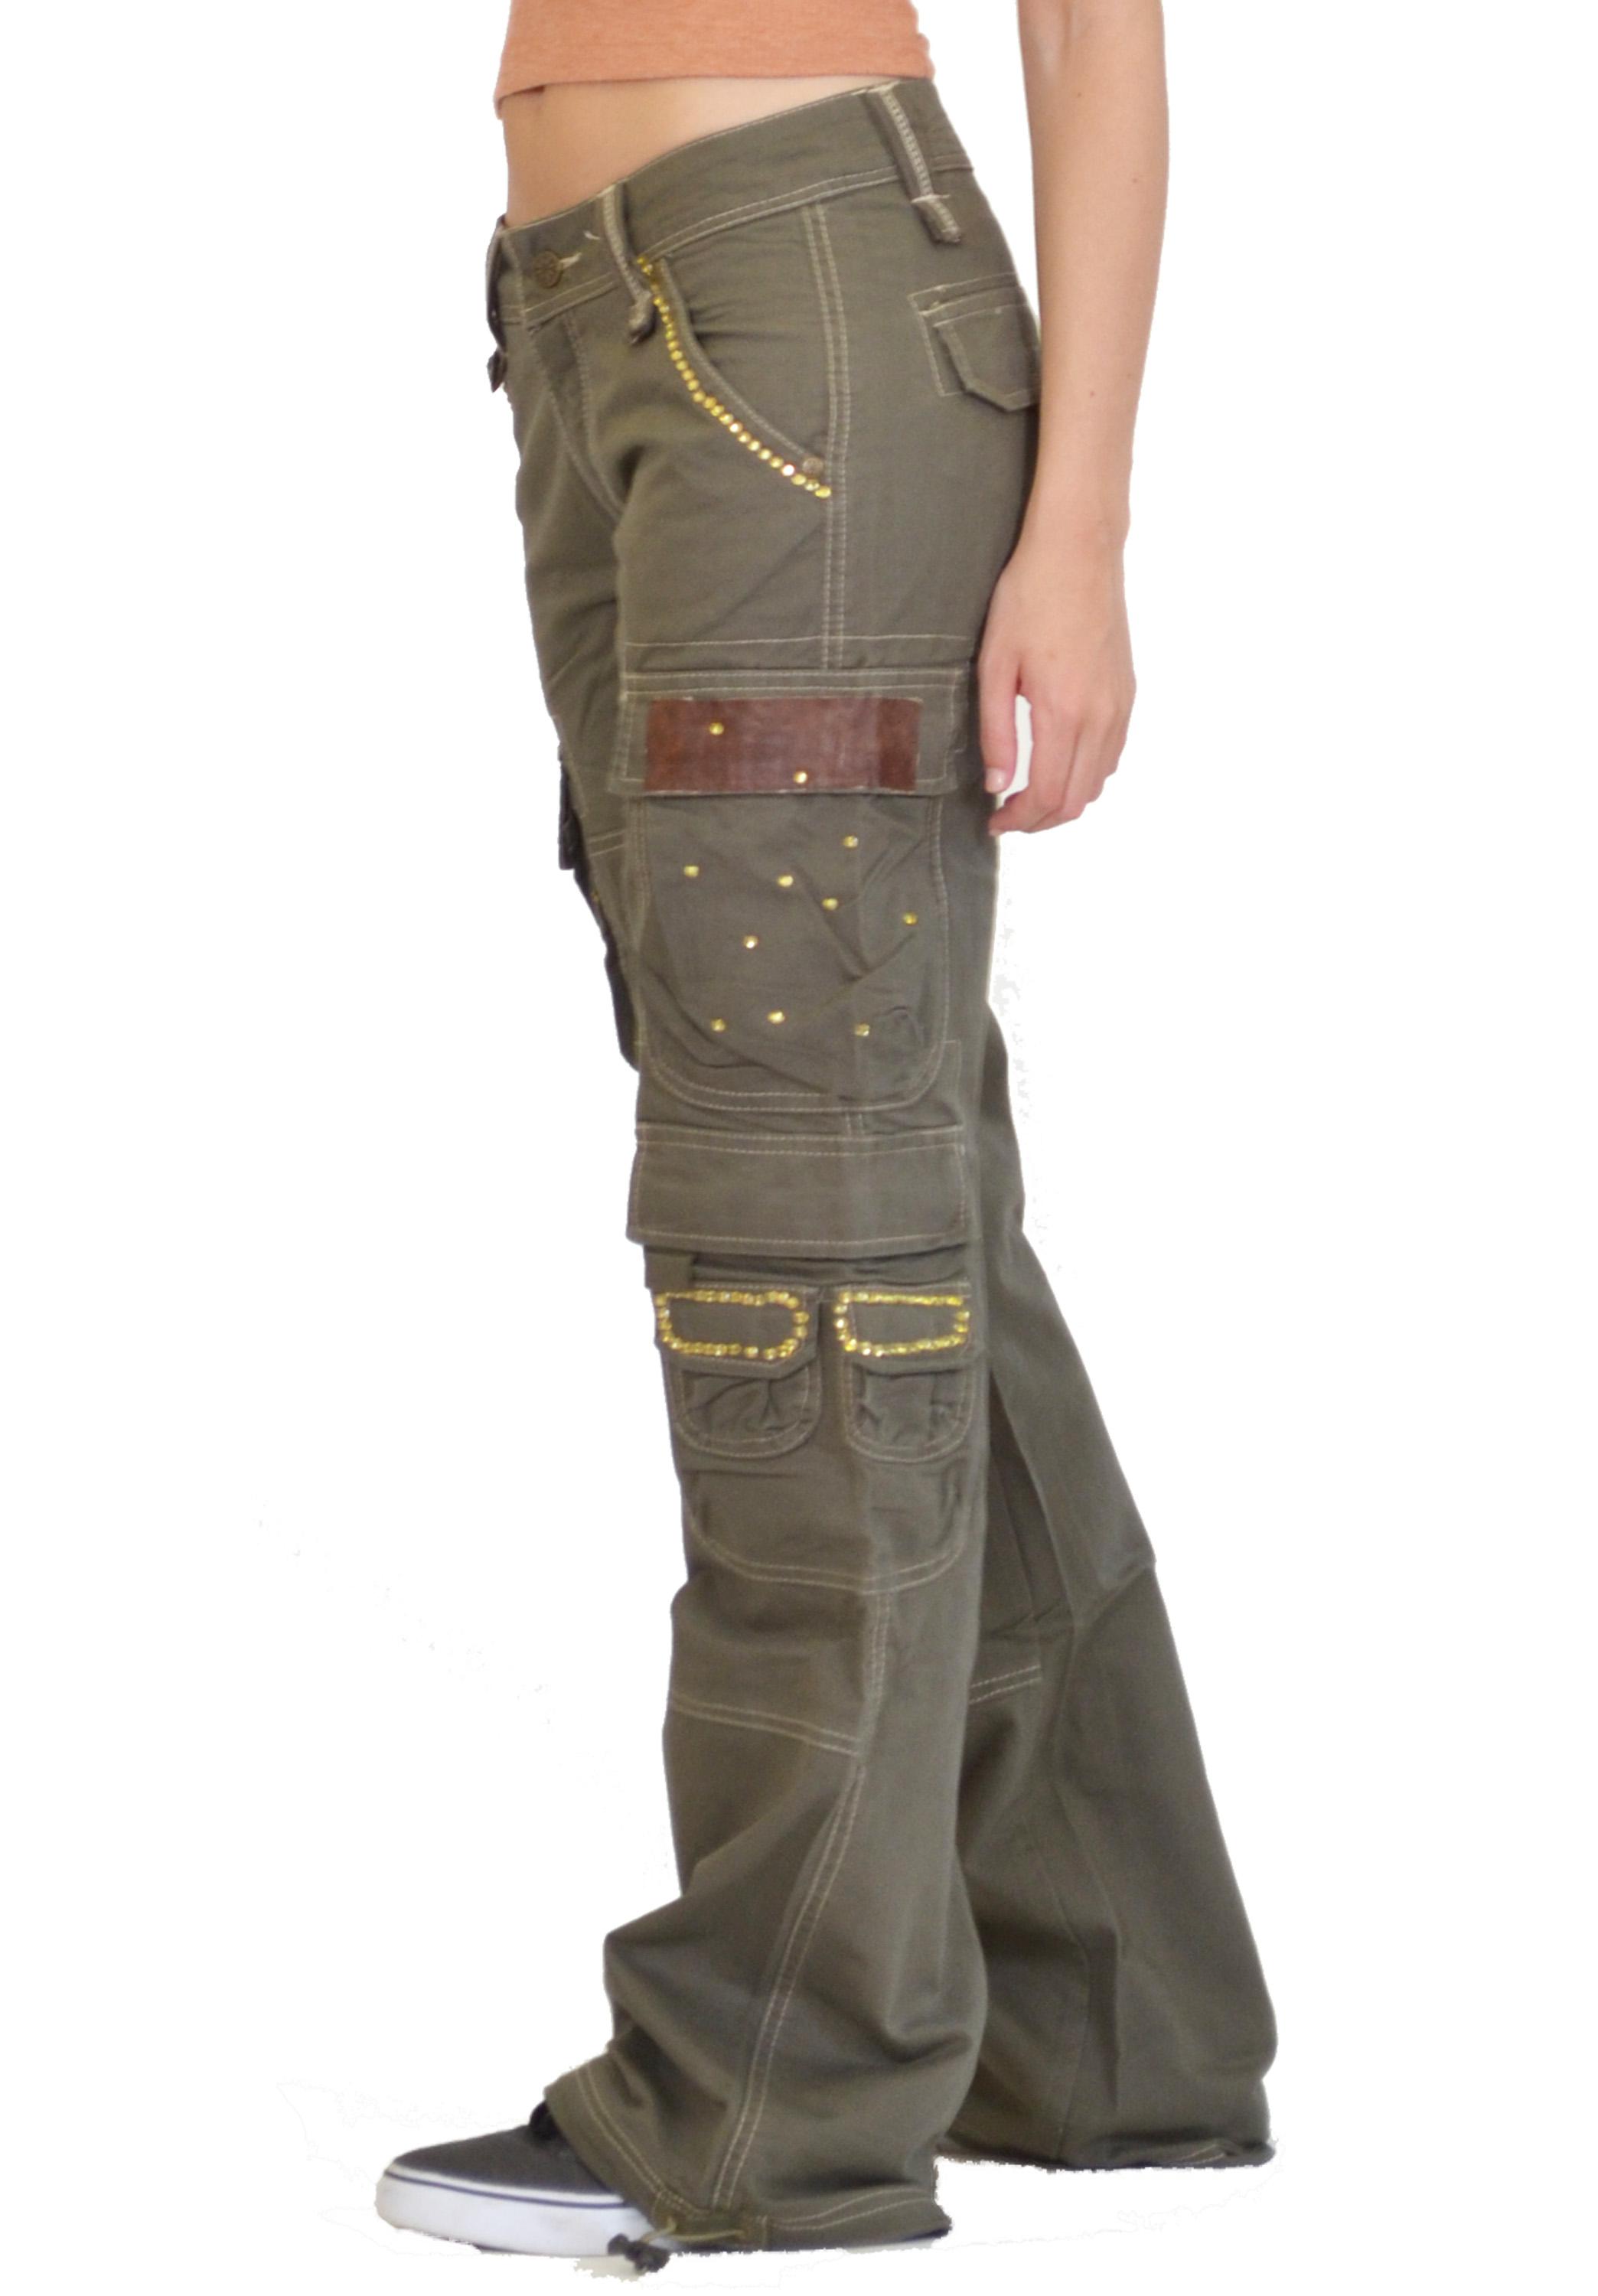 Model Stretch Cargo Pants By Flashlights  Look Again